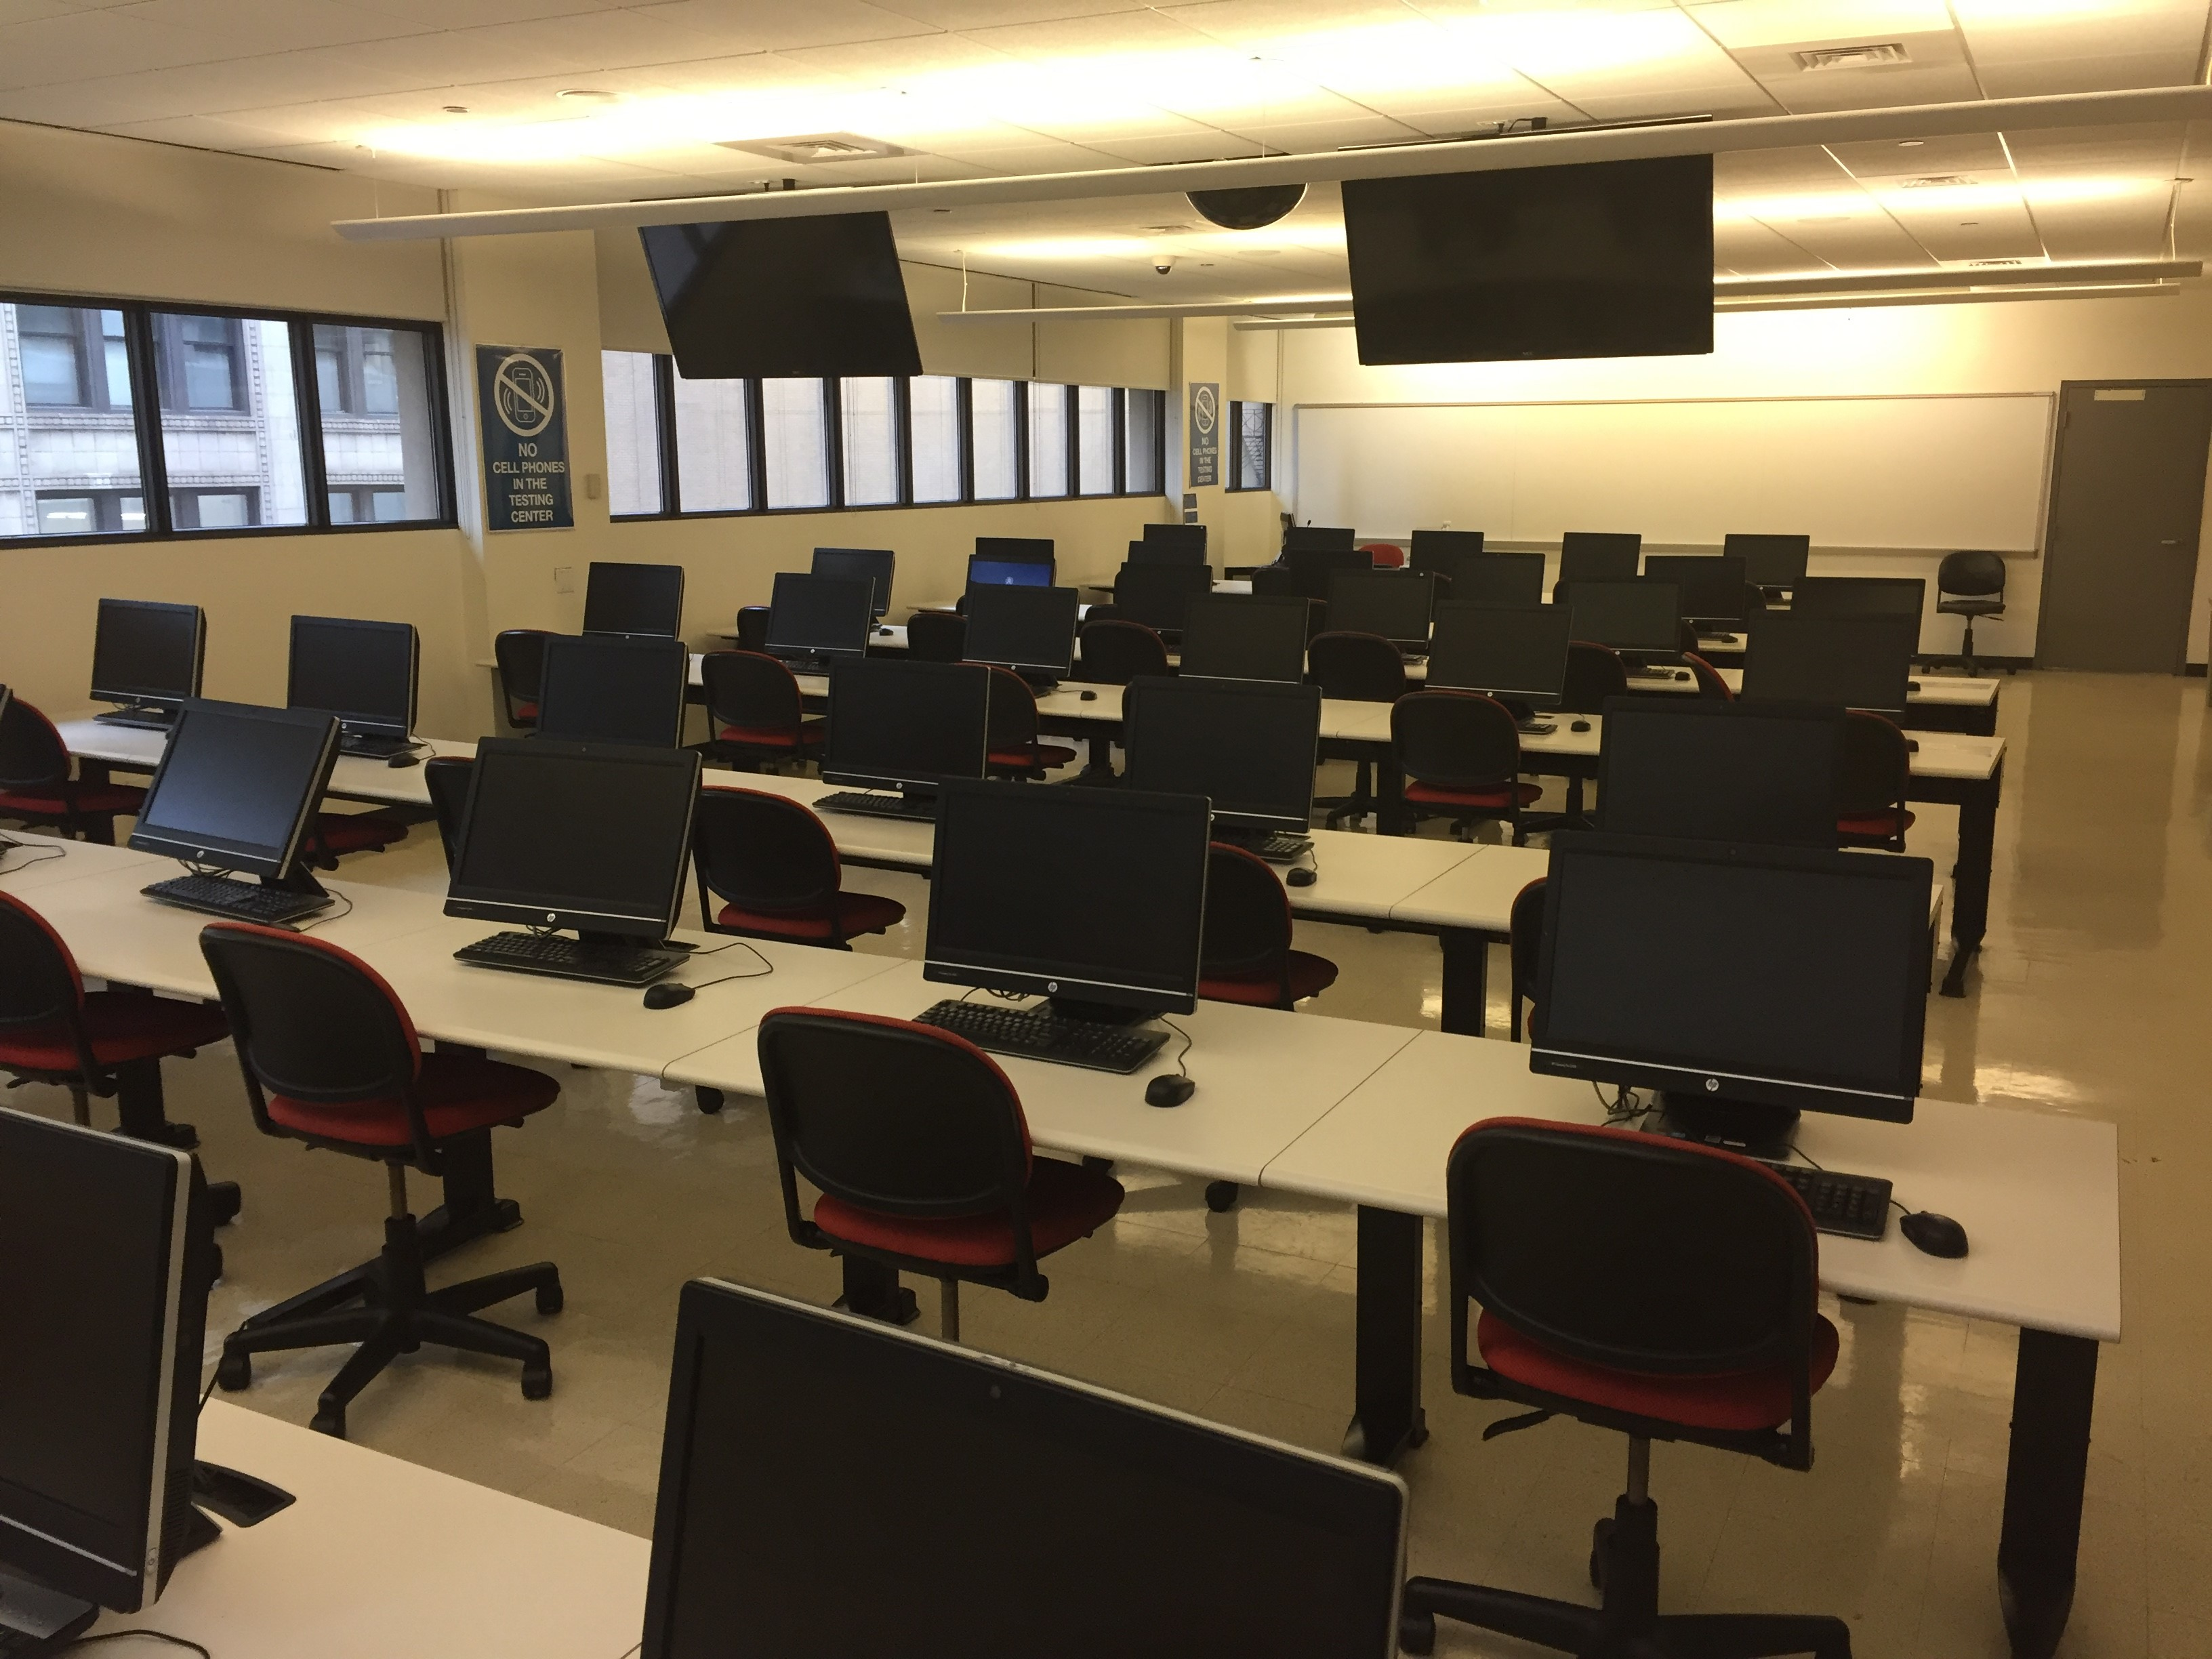 City Colleges of Chicago - Harold Washington - Computer Labs